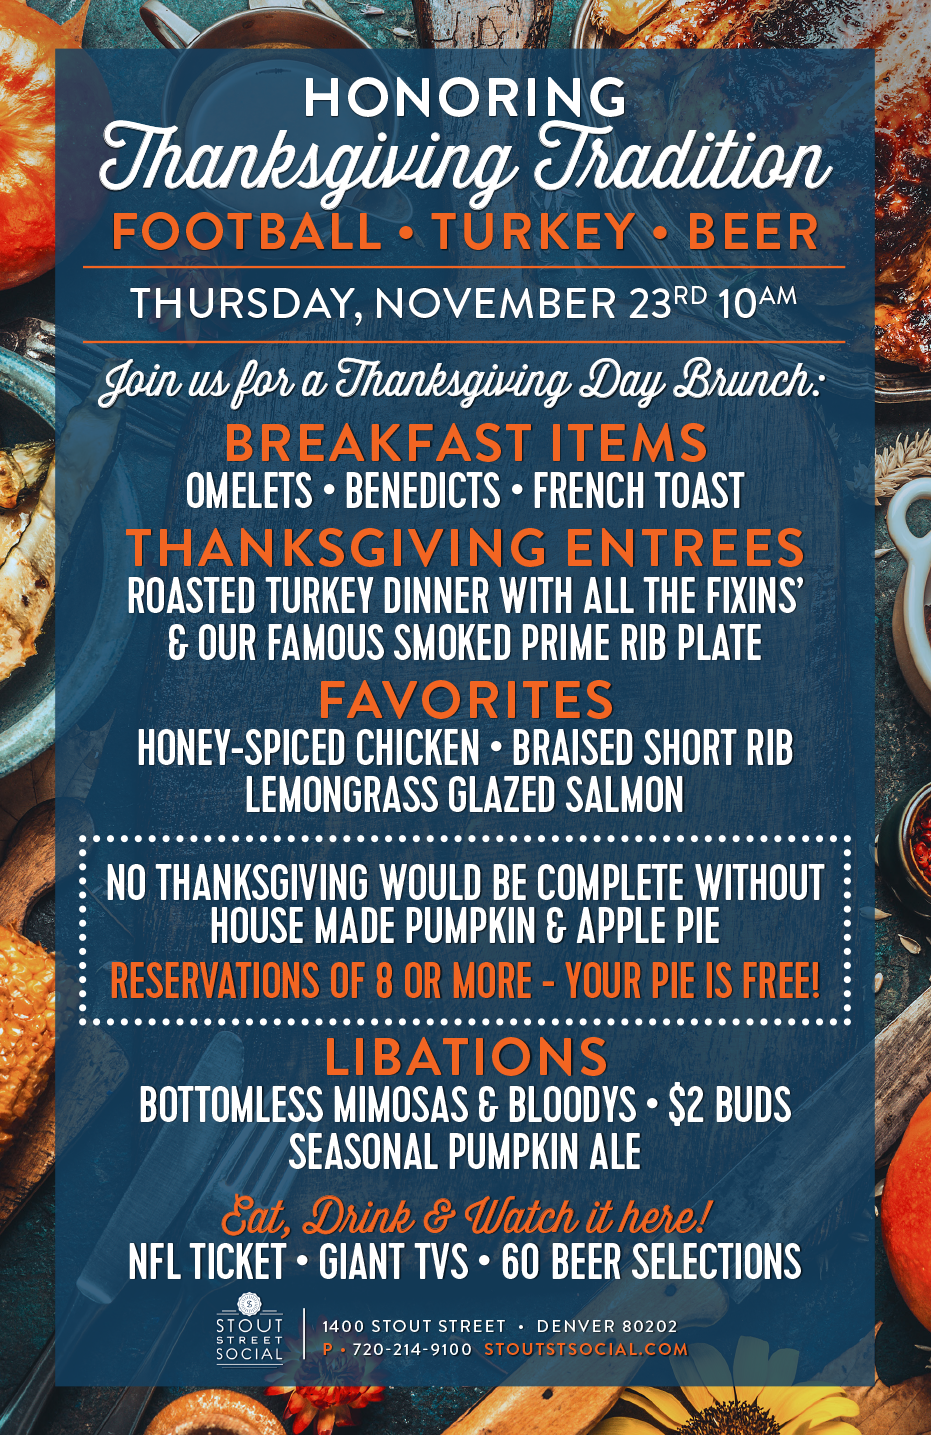 Join Us for Thanksgiving Day Brunch at Stout Street Social